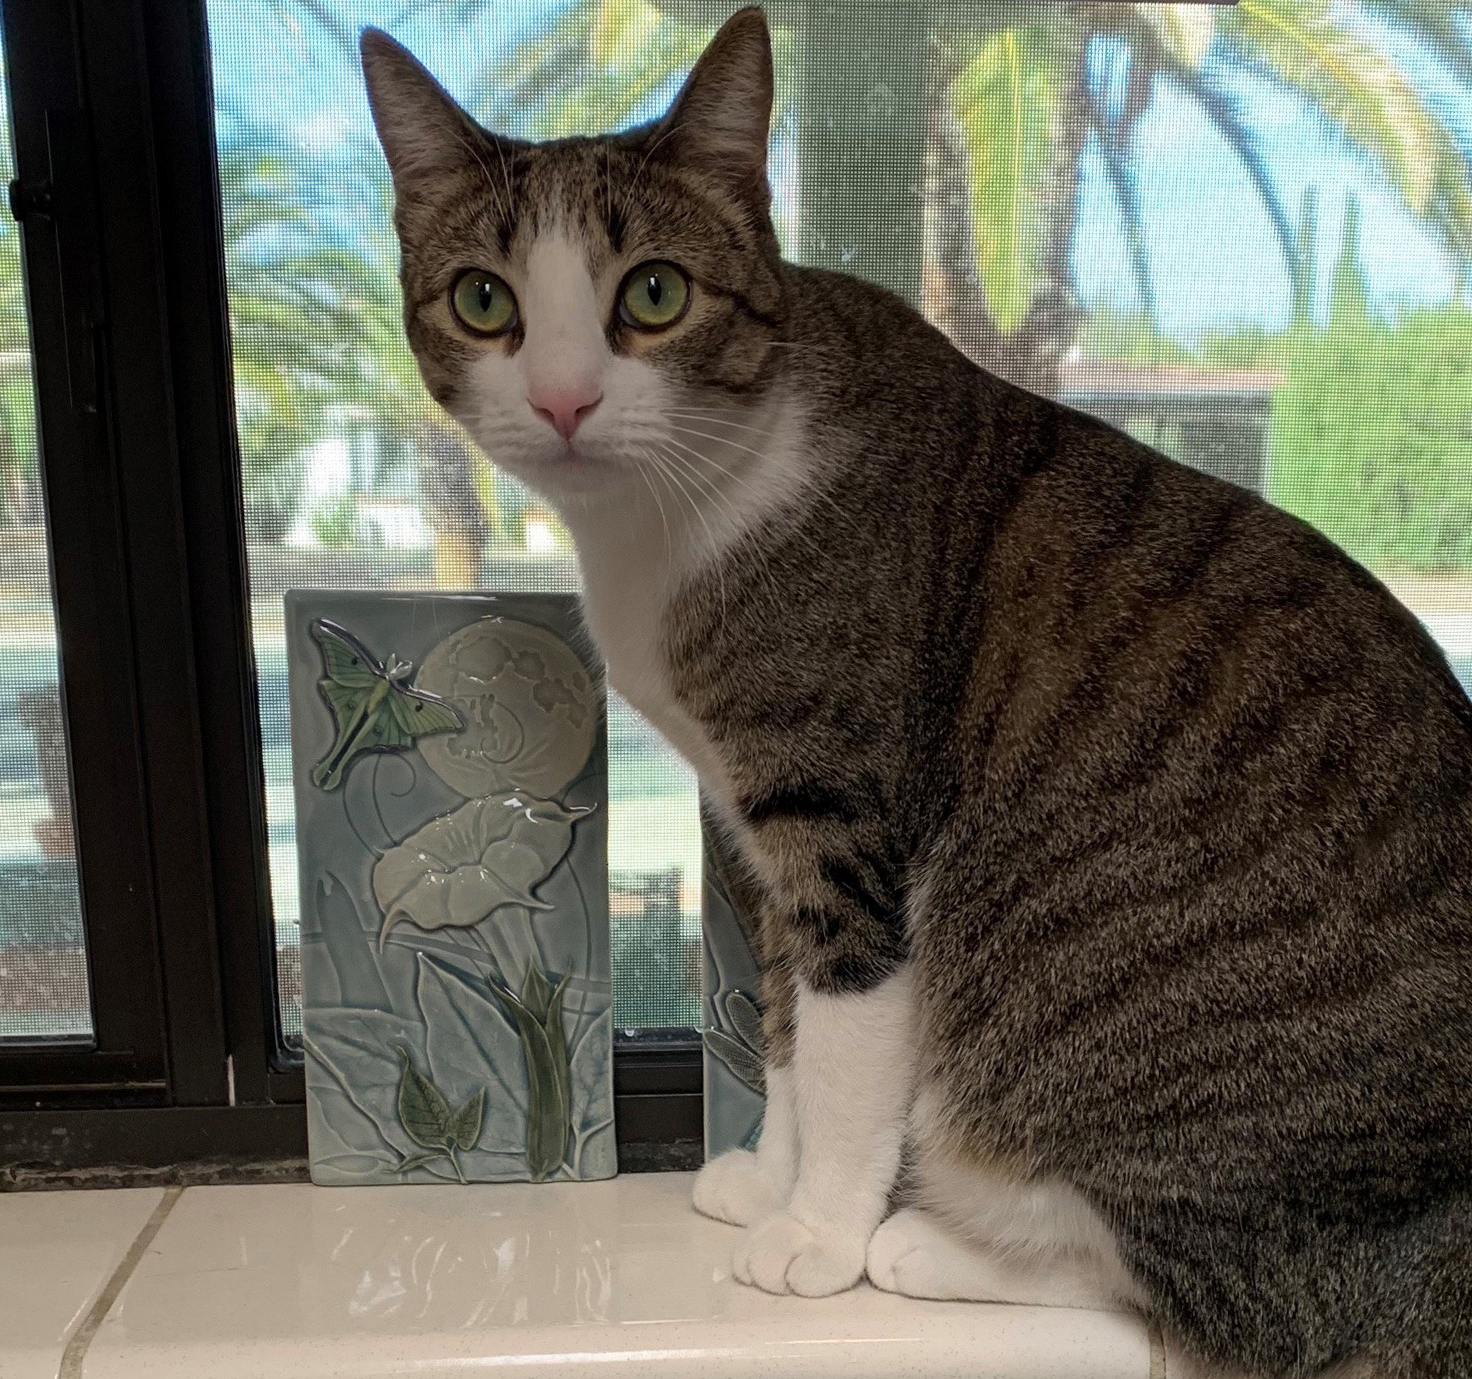 Customers cat next to tile